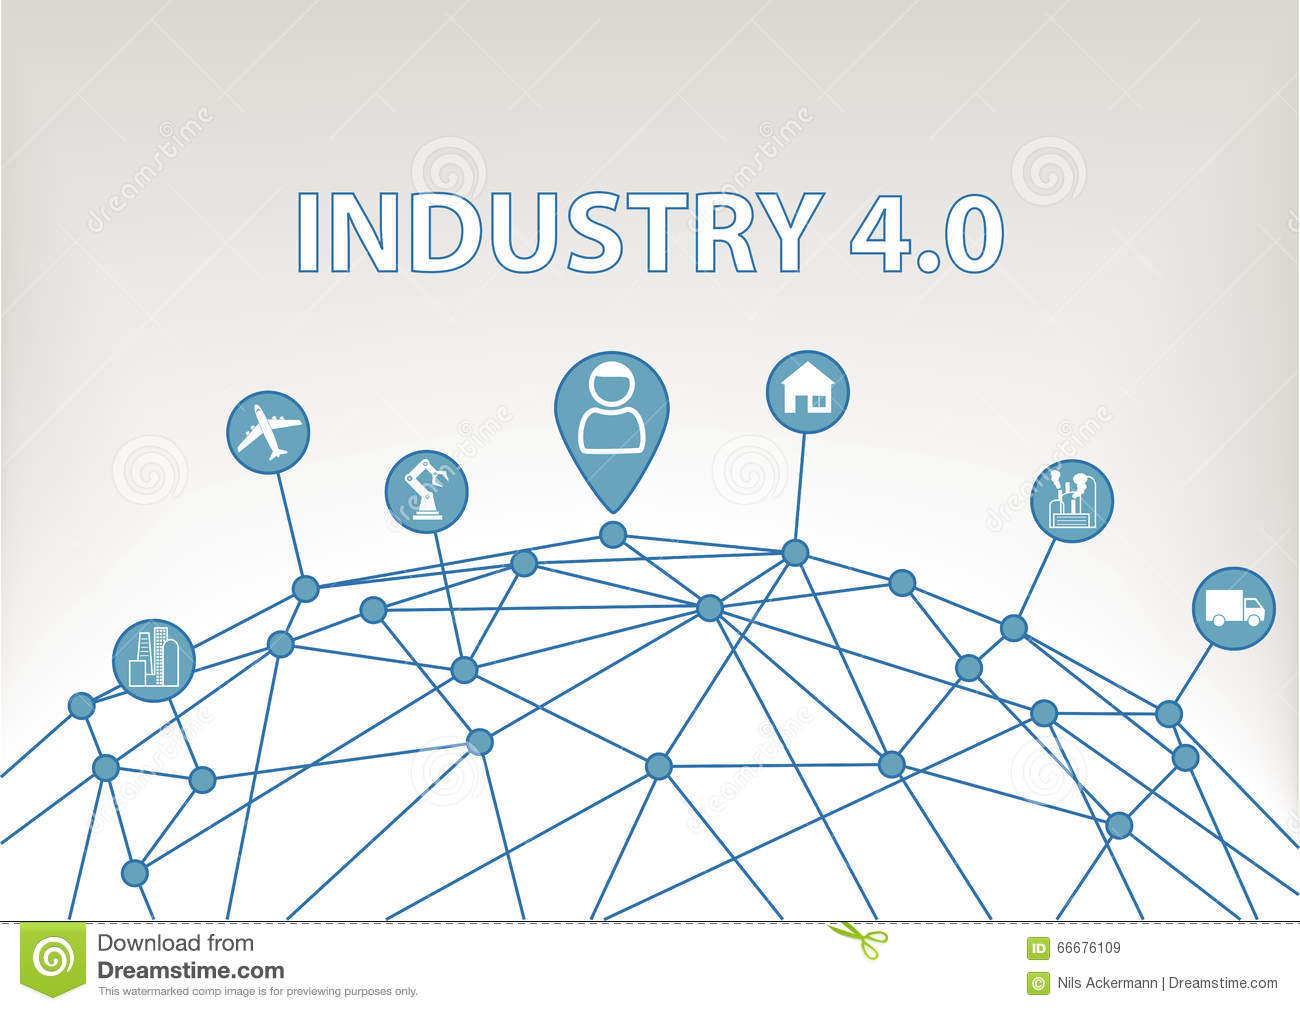 Industry 4.0 illustration background with world grid and consumer connected to devices like industrial plants, robots